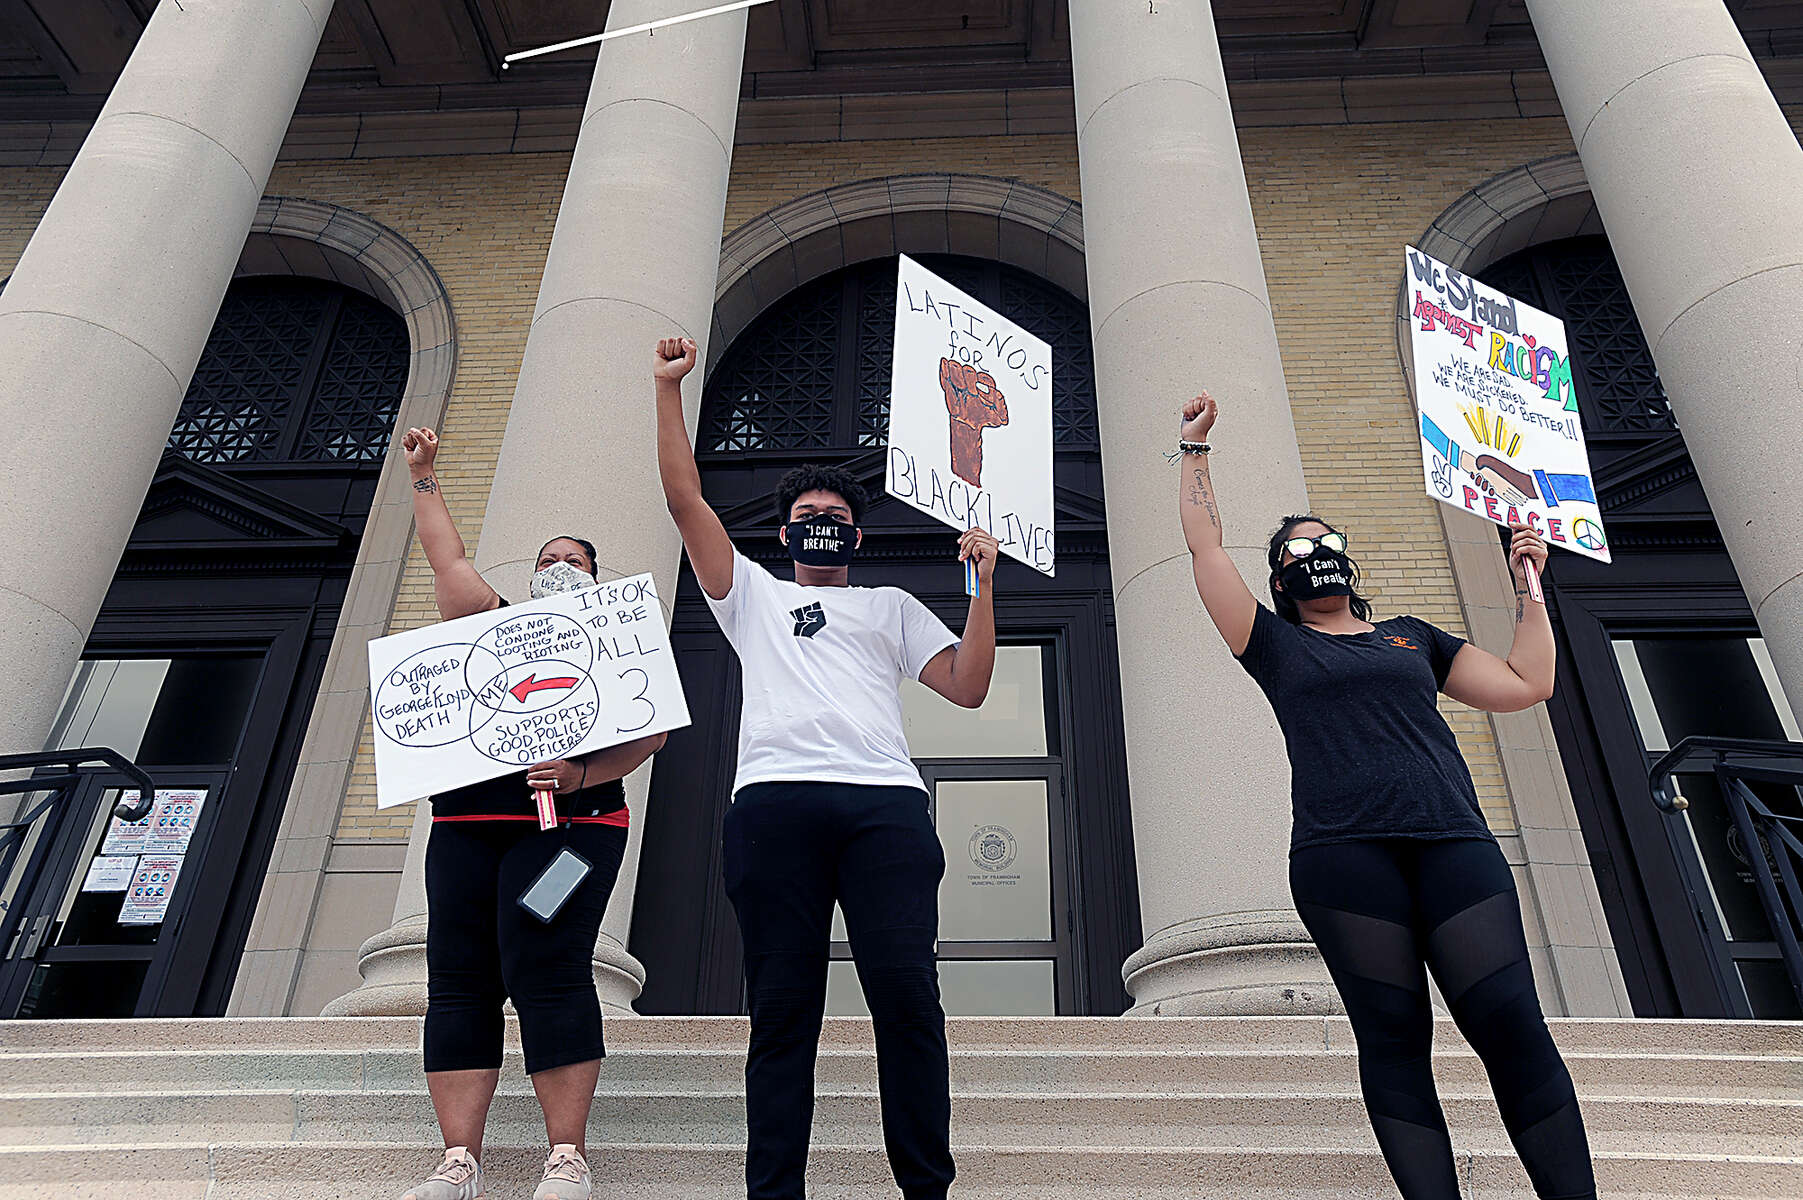 6/3/20-- FRAMINGHAM-- Noah Montano, 16, of Framingham, a sophomore at Keefe Technical High School, center, led a Black Lives Matter march and rally from the City Hall steps Wednesday.   [Daily News and Wicked Local Staff Photo/Art Illman]